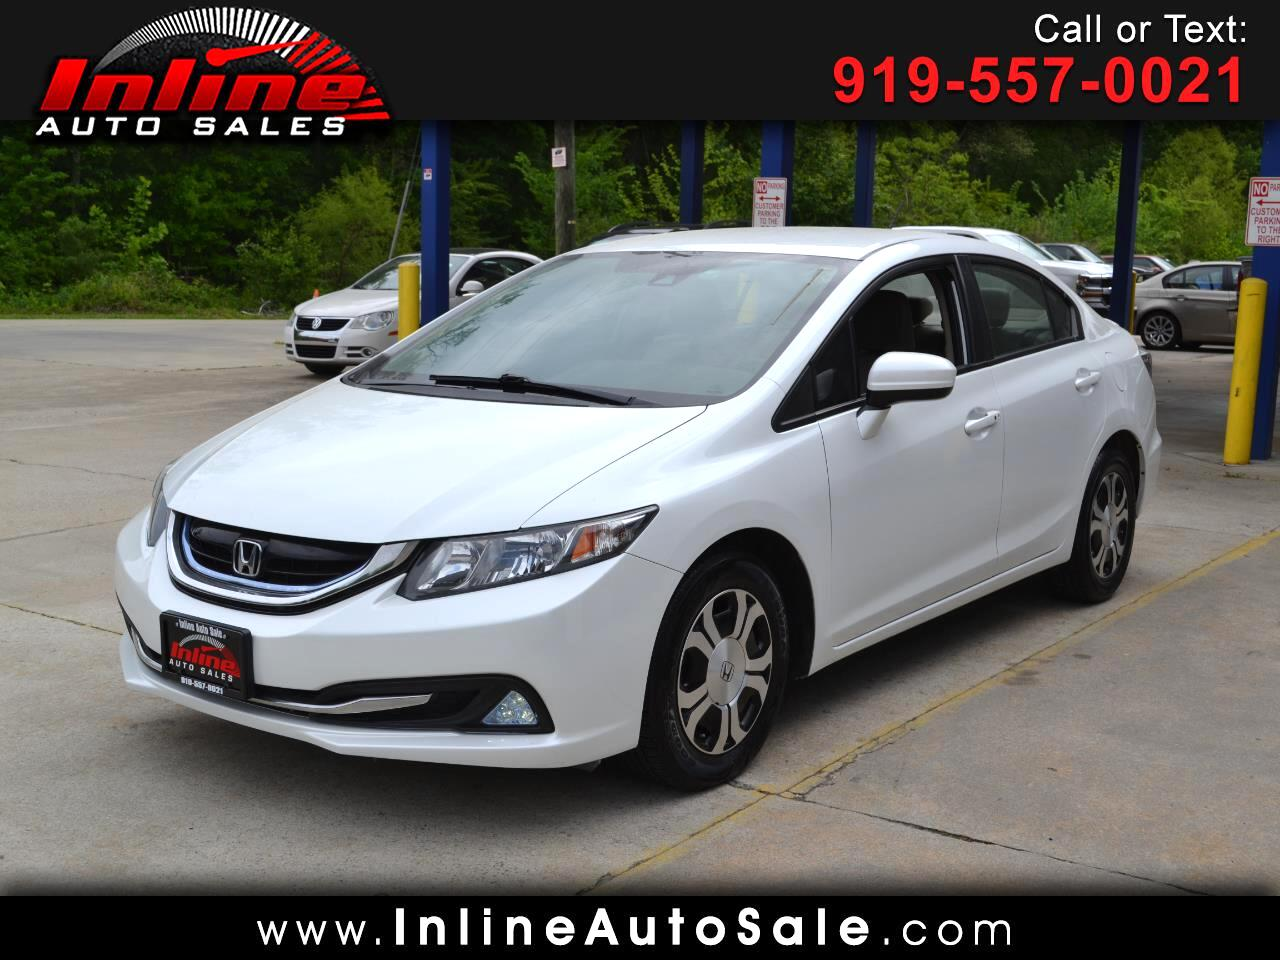 2014 Honda Civic Hybrid 4dr Sdn L4 CVT w/Leather